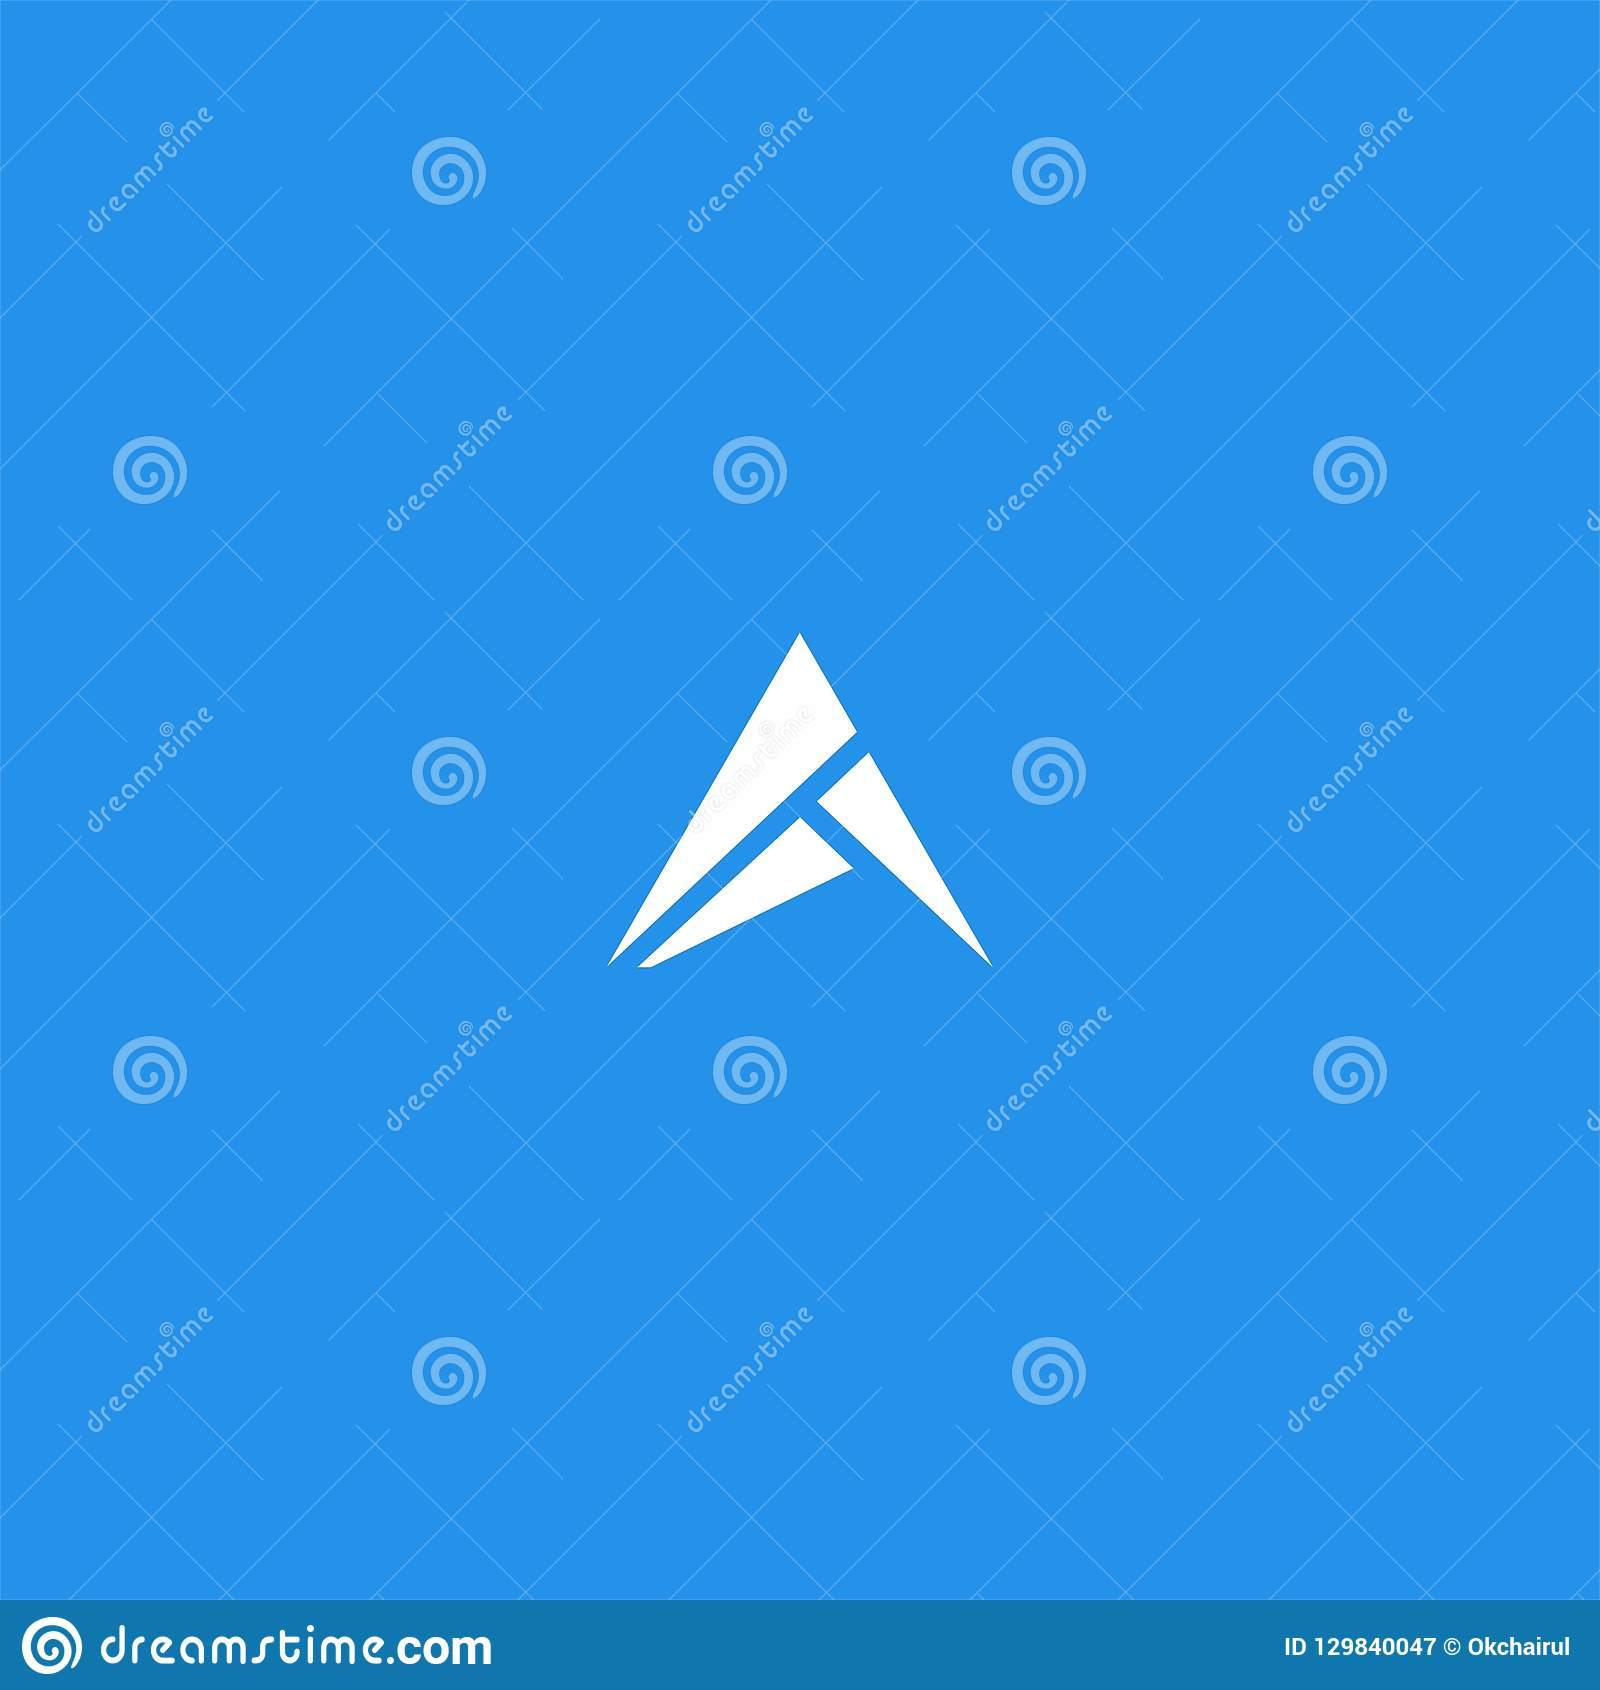 Triangle or Letter A logo design